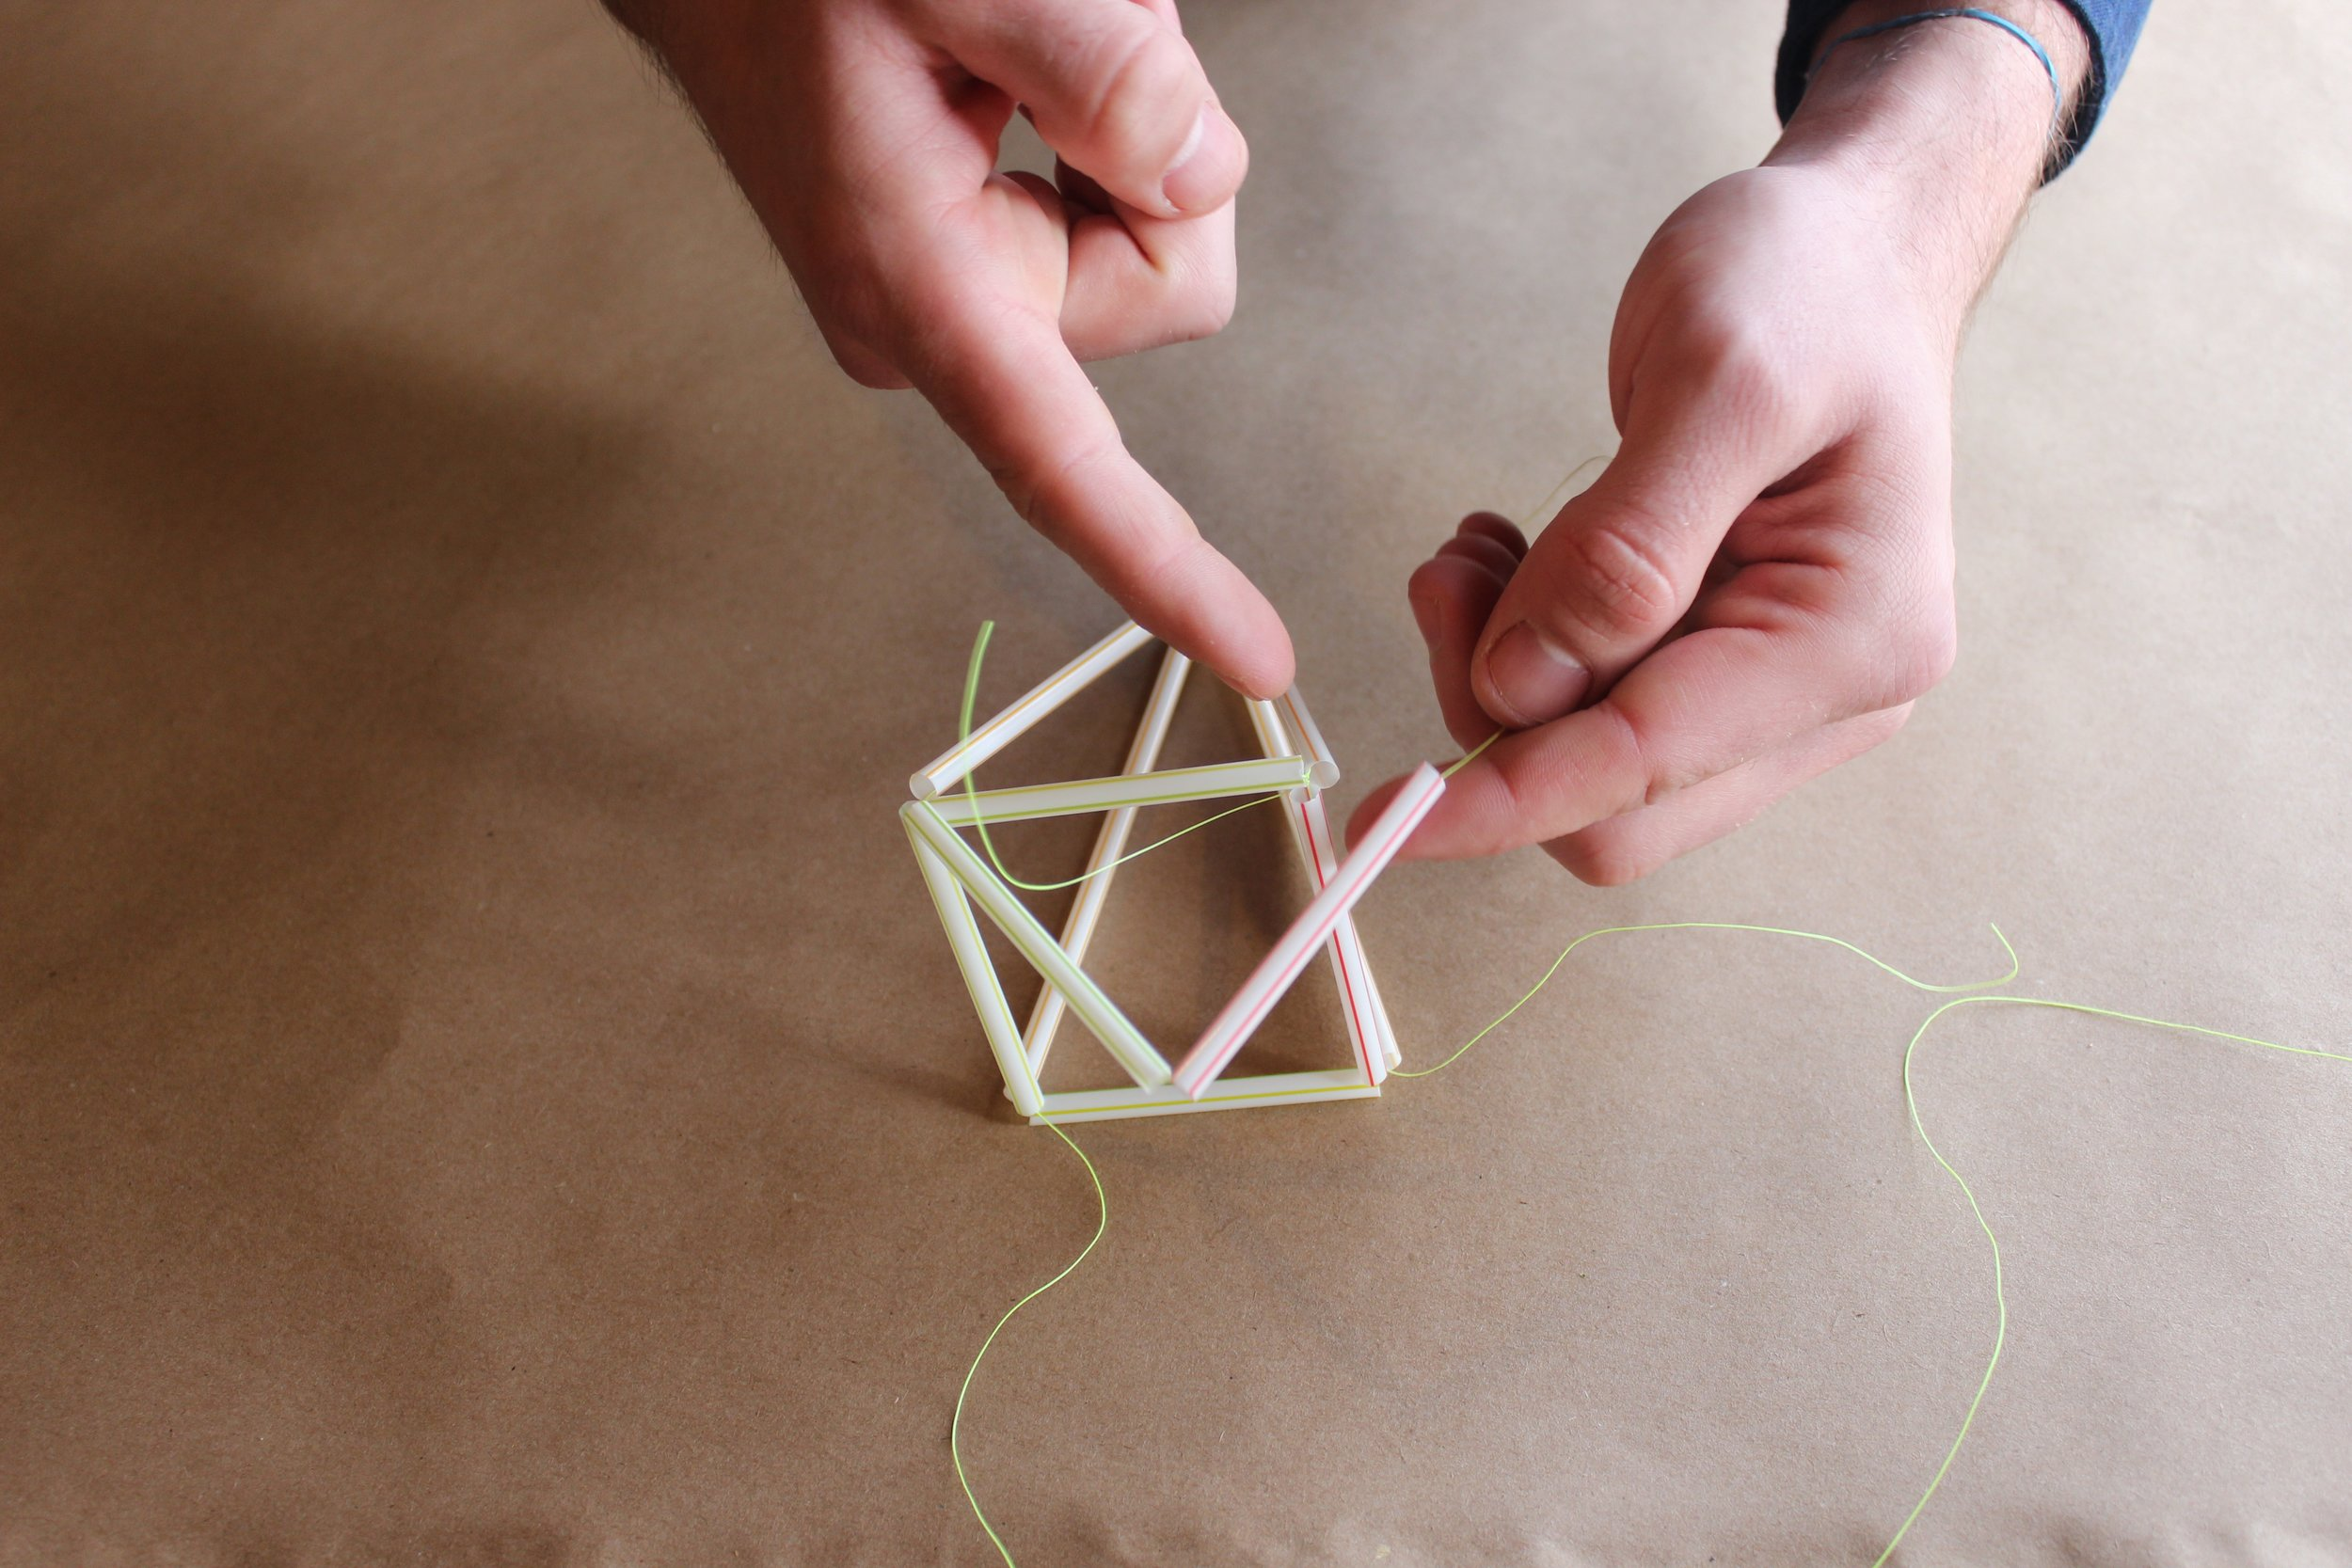 Step 8.) Now you should have (4) pieces of string coming off the base of the square. Take (1) of these strings along with (2) 2.5 inch pieces of straw and thread them on the same string. Attach the string to the opposite corner creating a triangle.